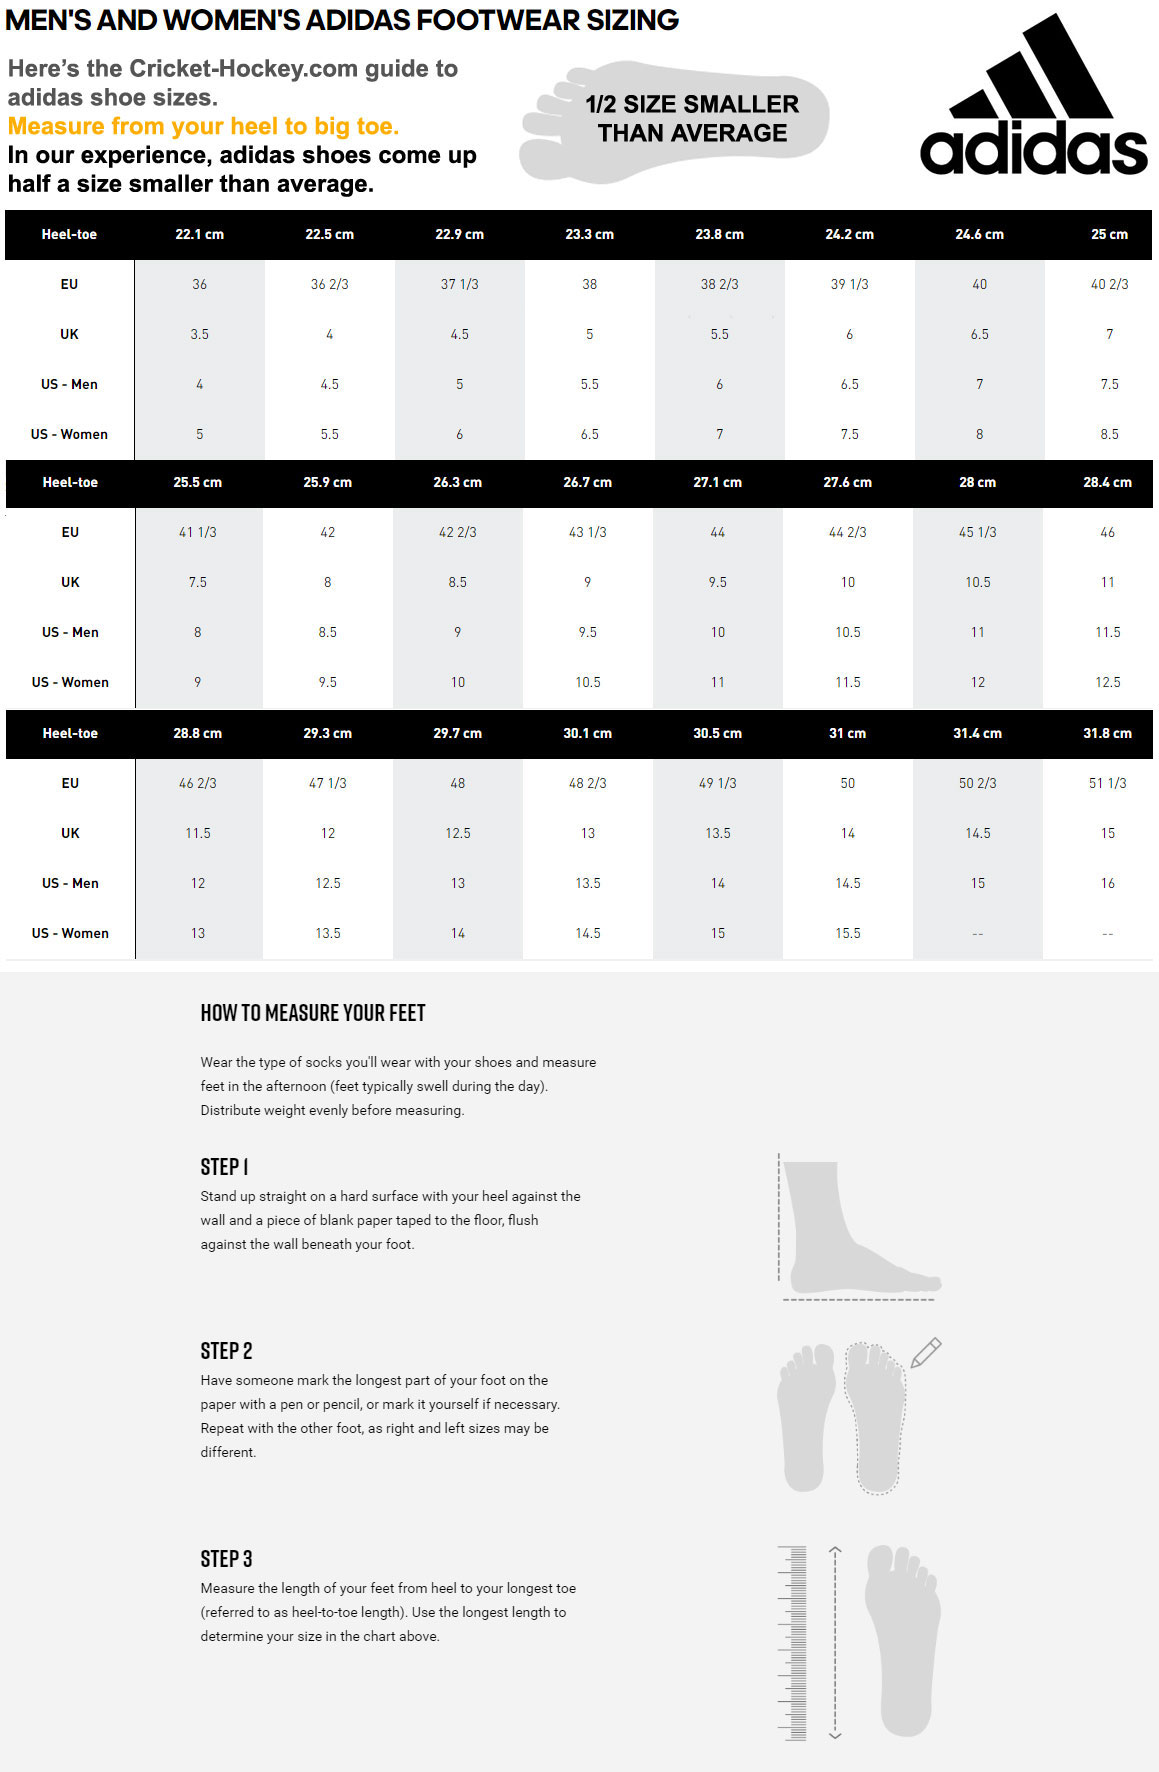 Adidas Shoe Size Guide